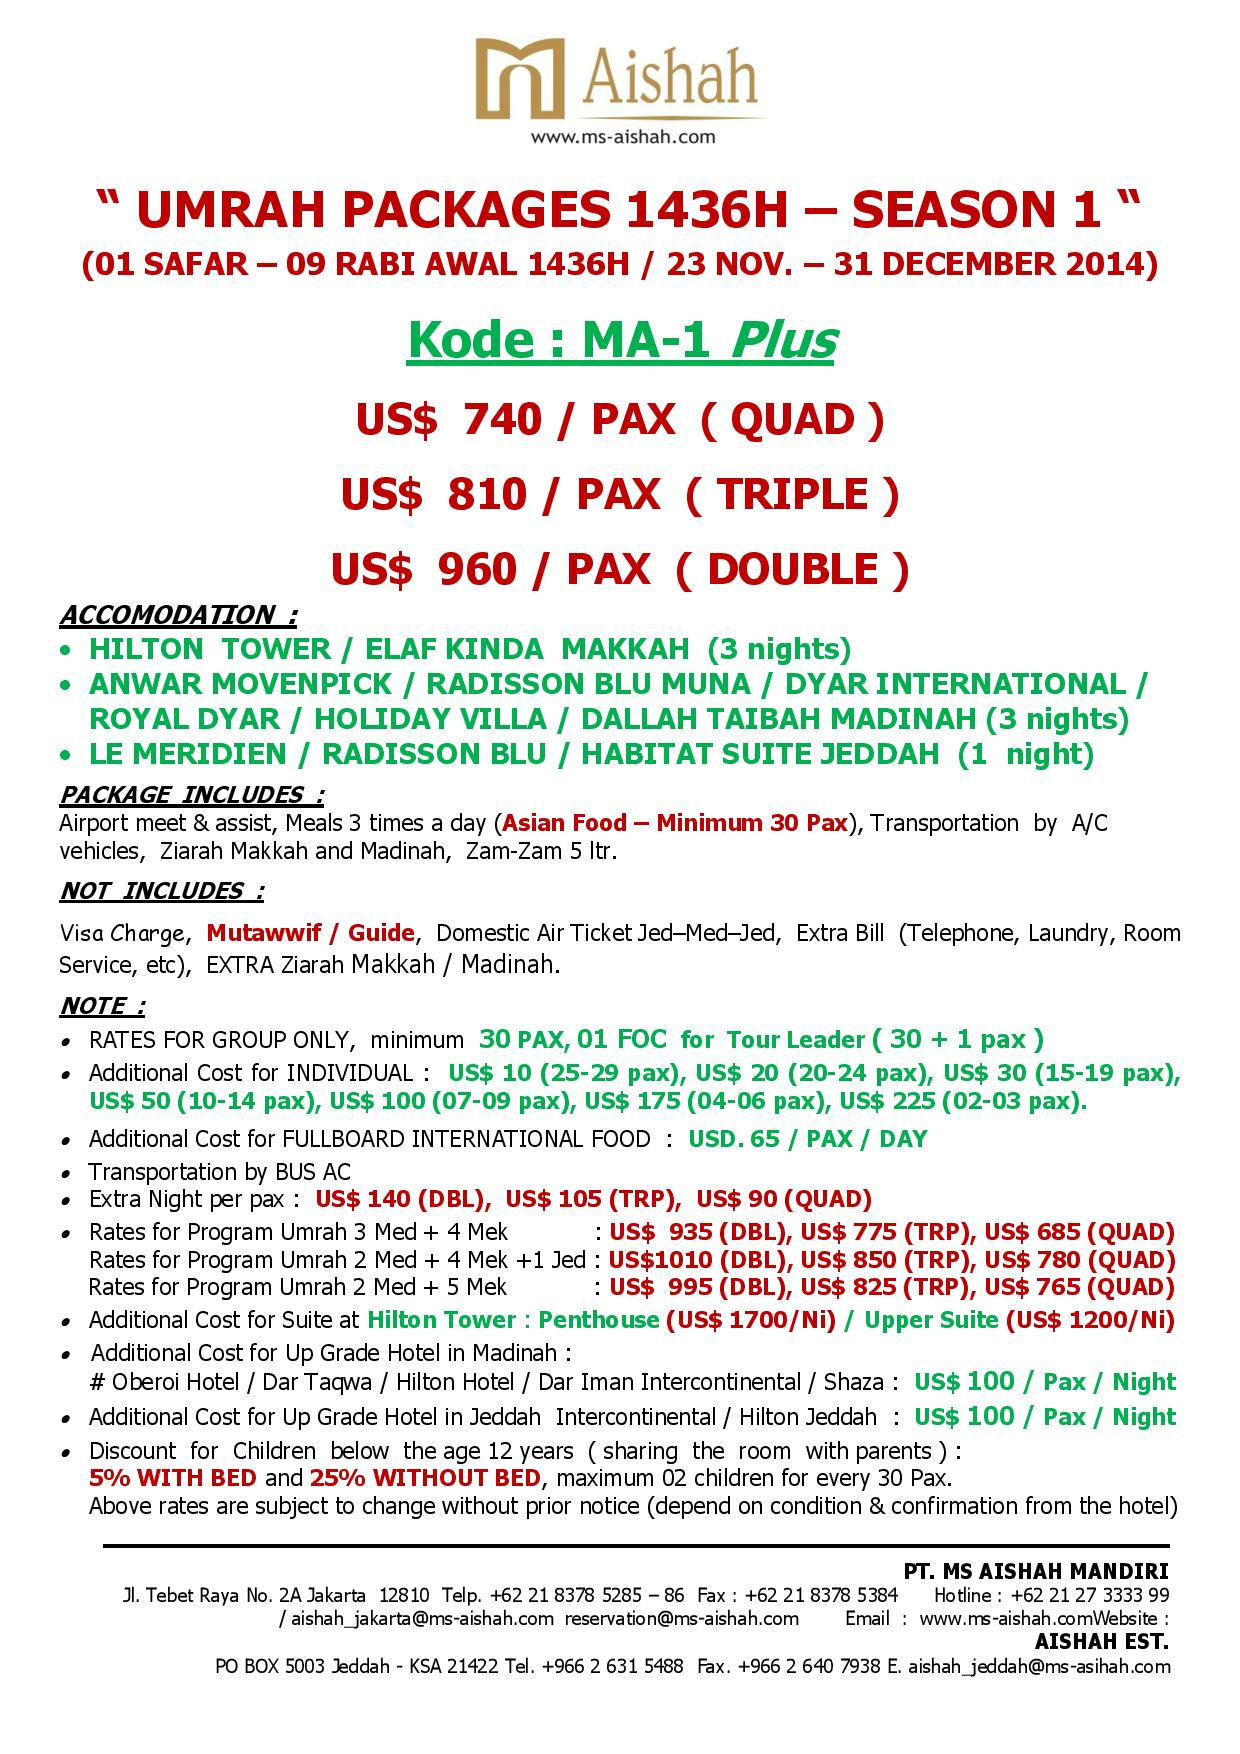 SPECIAL OFFER UMRAH 1436H SEASON 1 - ma 1 plus